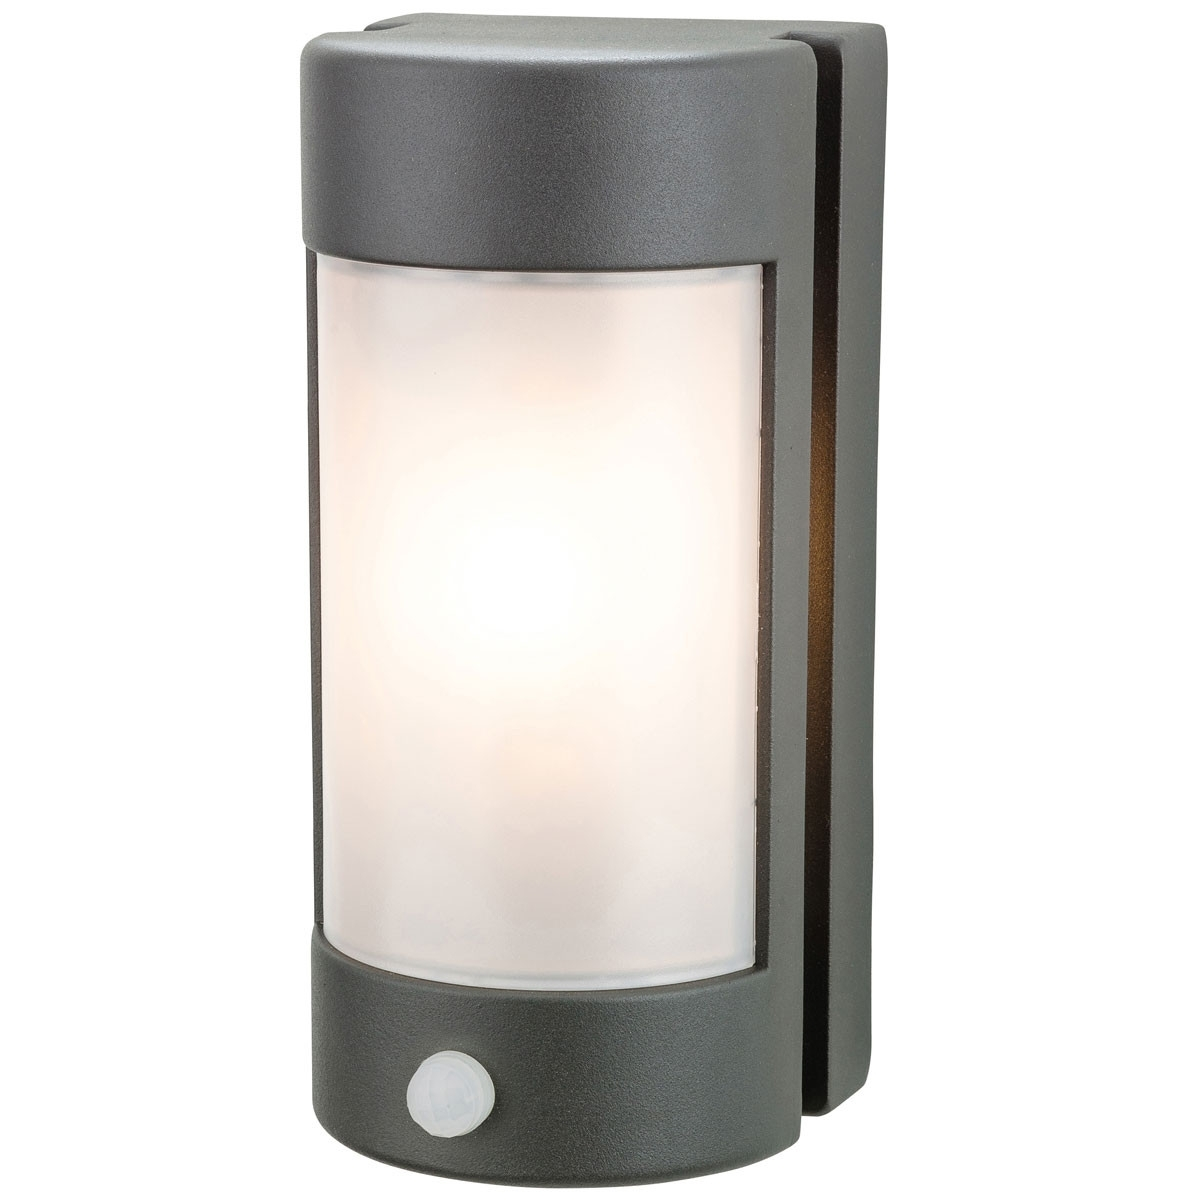 Diecast Aluminium Graphite Outdoor Wall Light With Pir Intended For Latest Outdoor Led Wall Lights With Pir (Gallery 3 of 20)